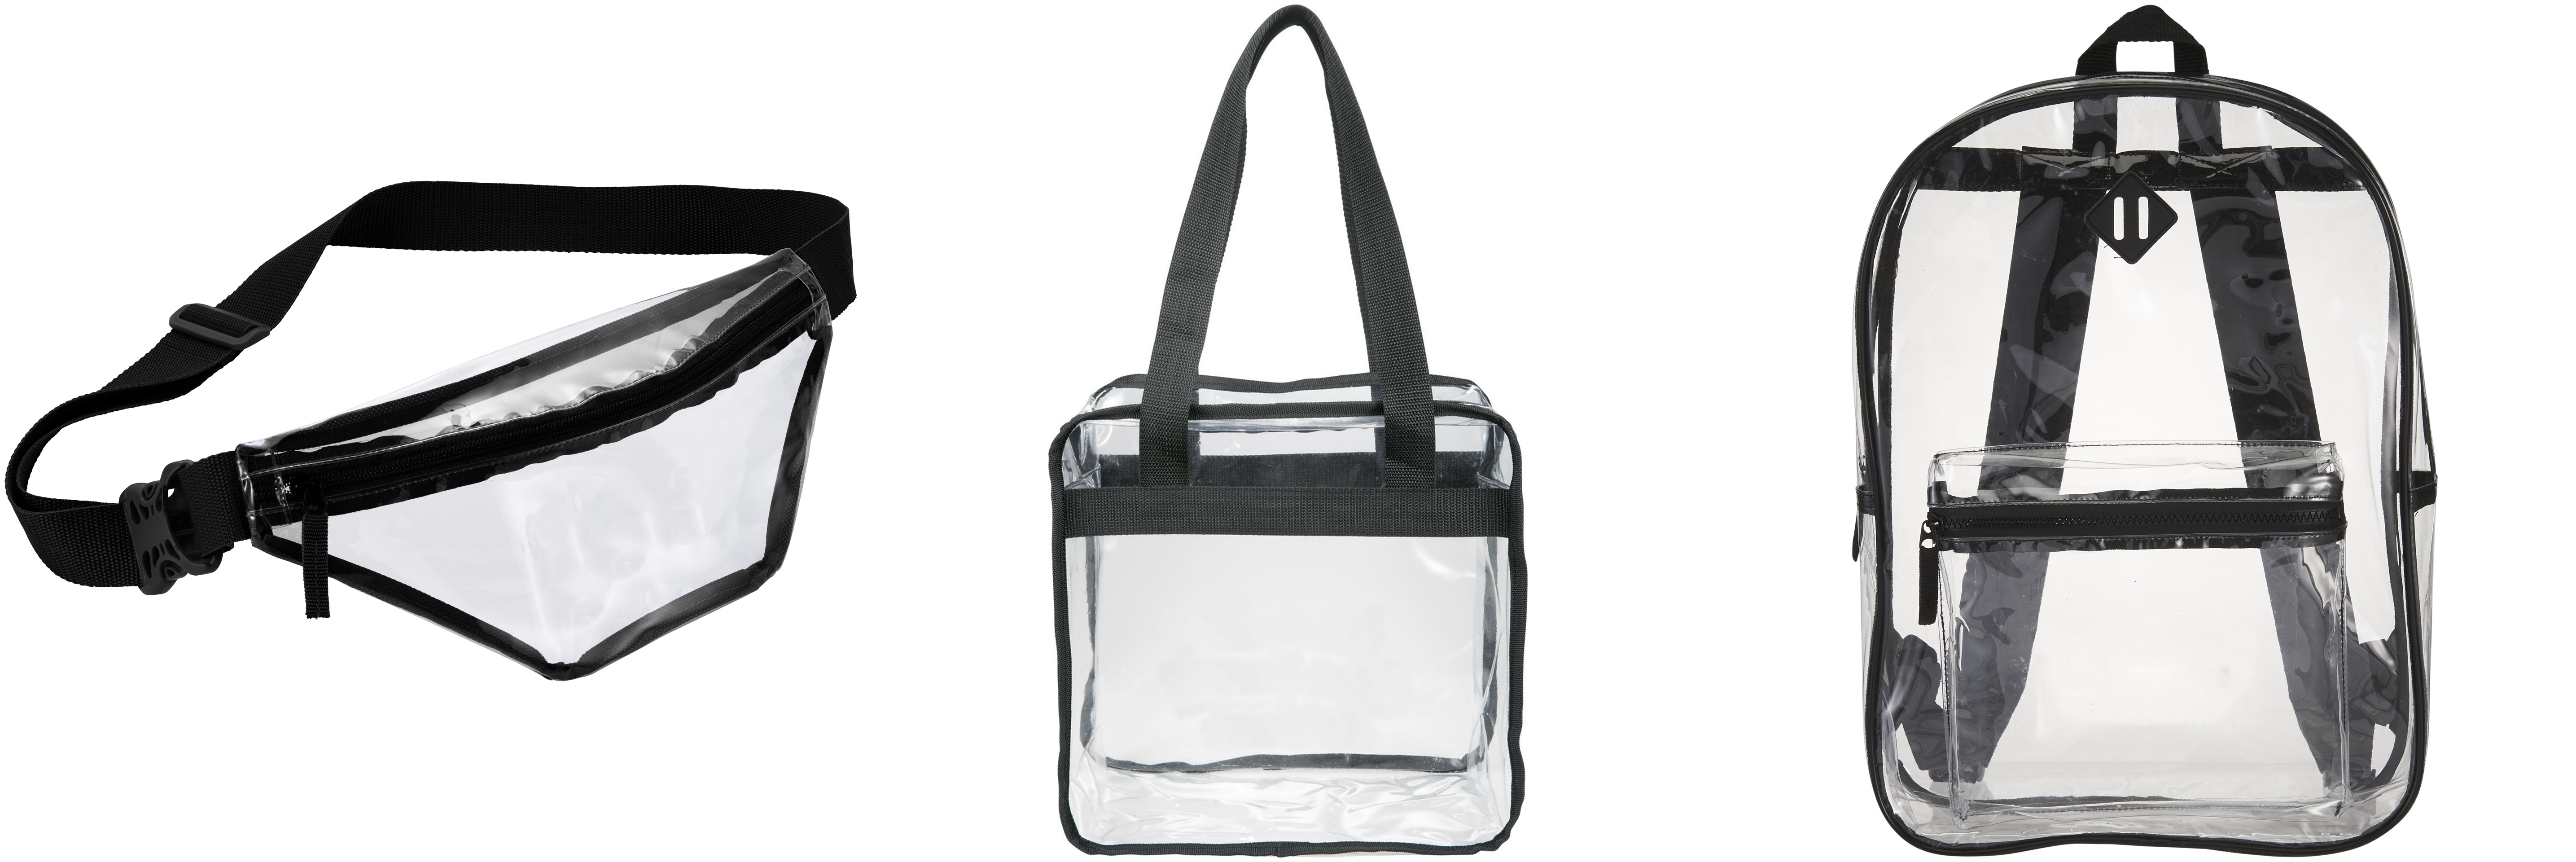 Clear Bags from NYFifth